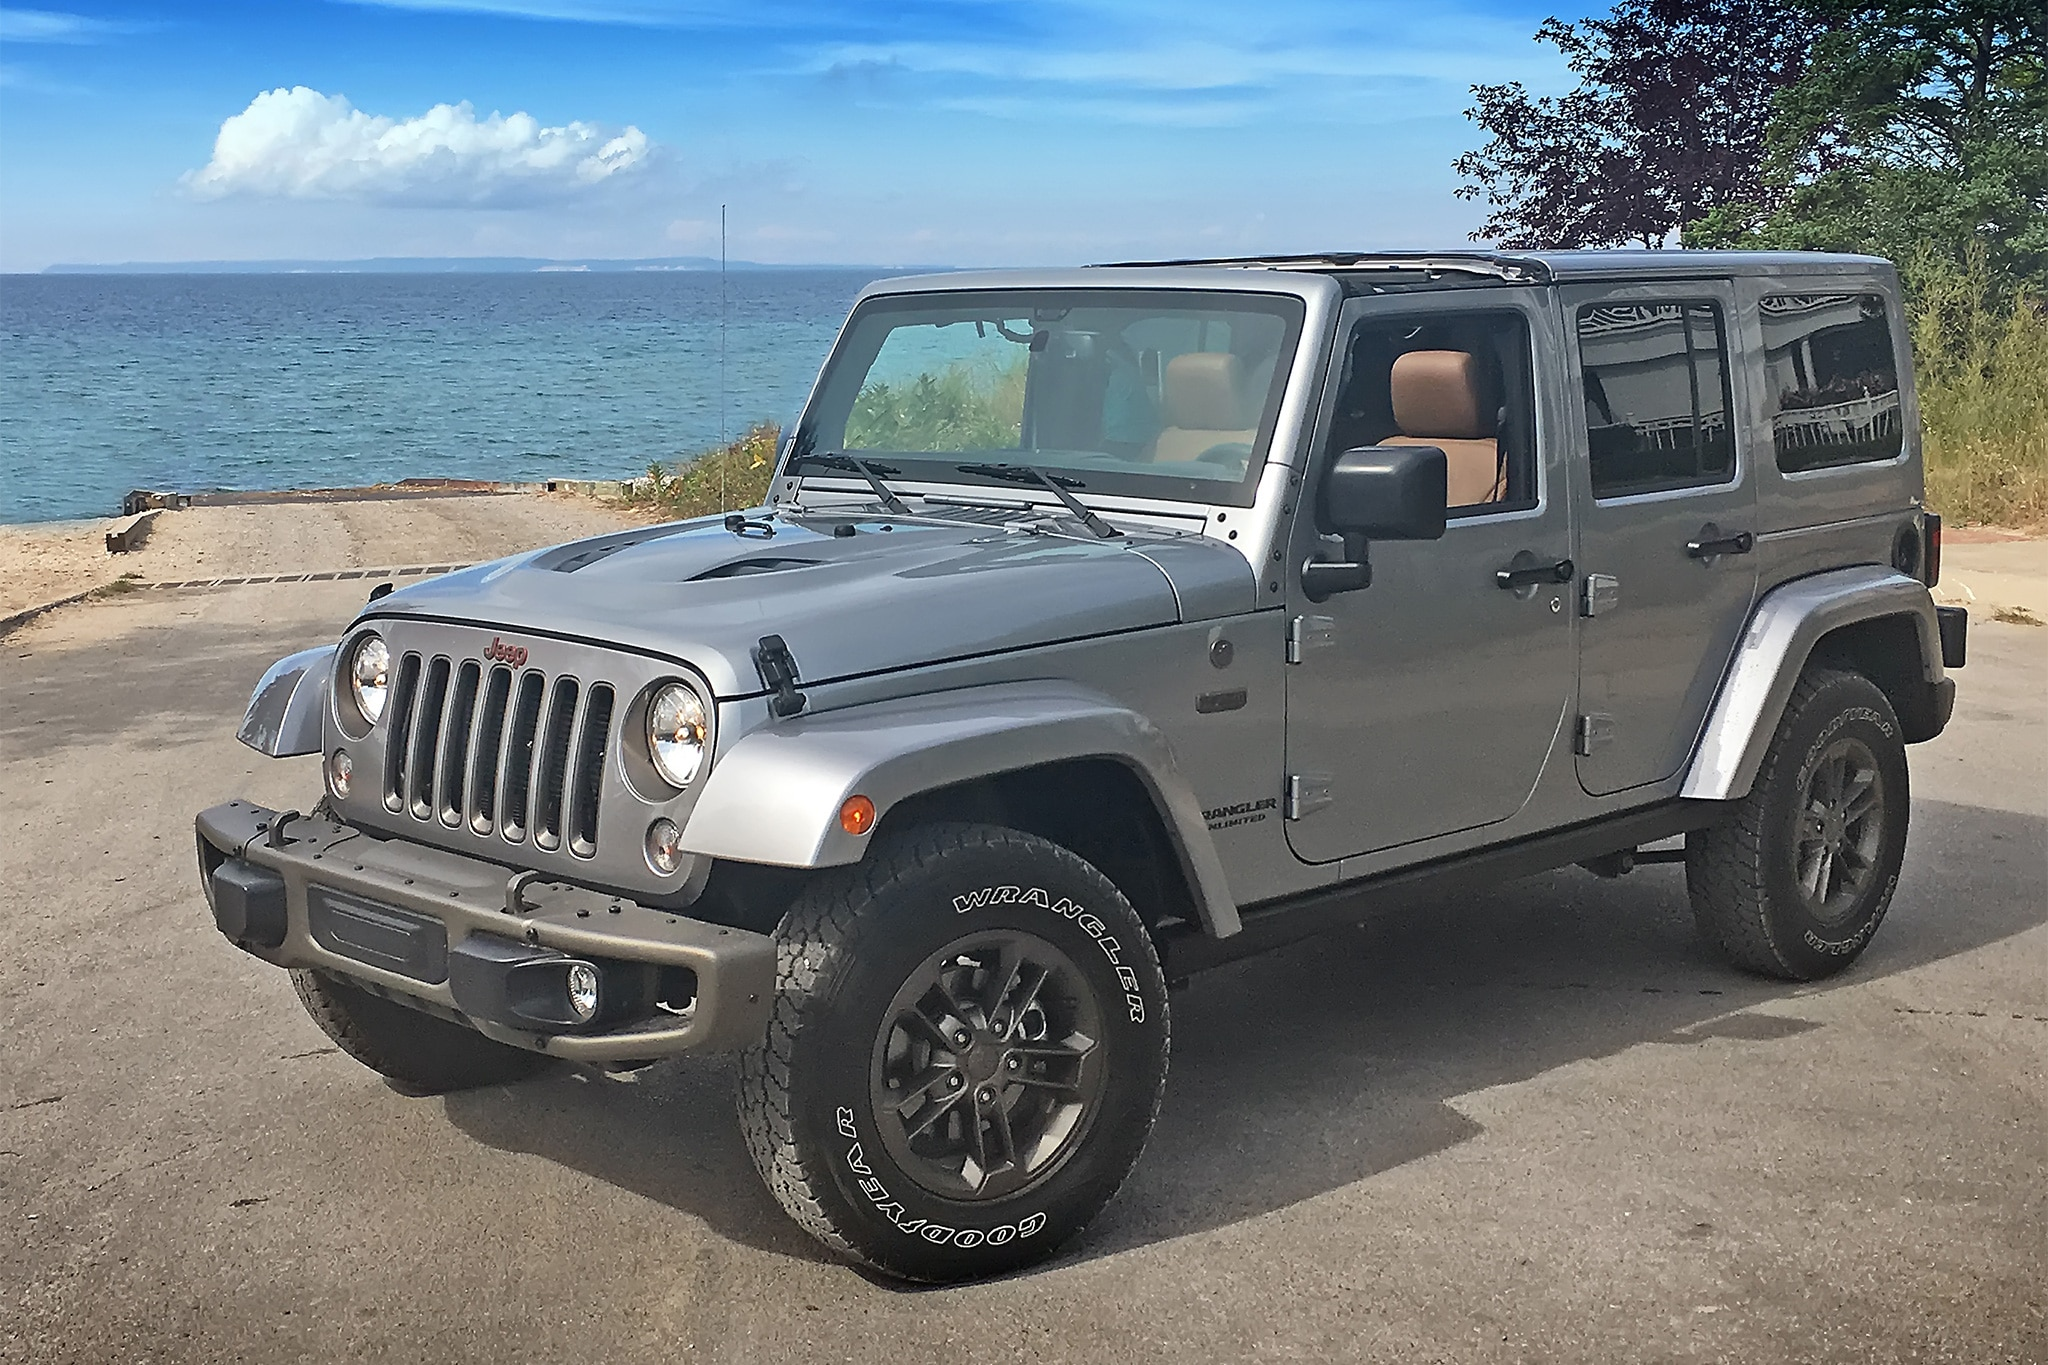 Lastest One Week With 2016 Jeep Wrangler Unlimited 4x4 75th